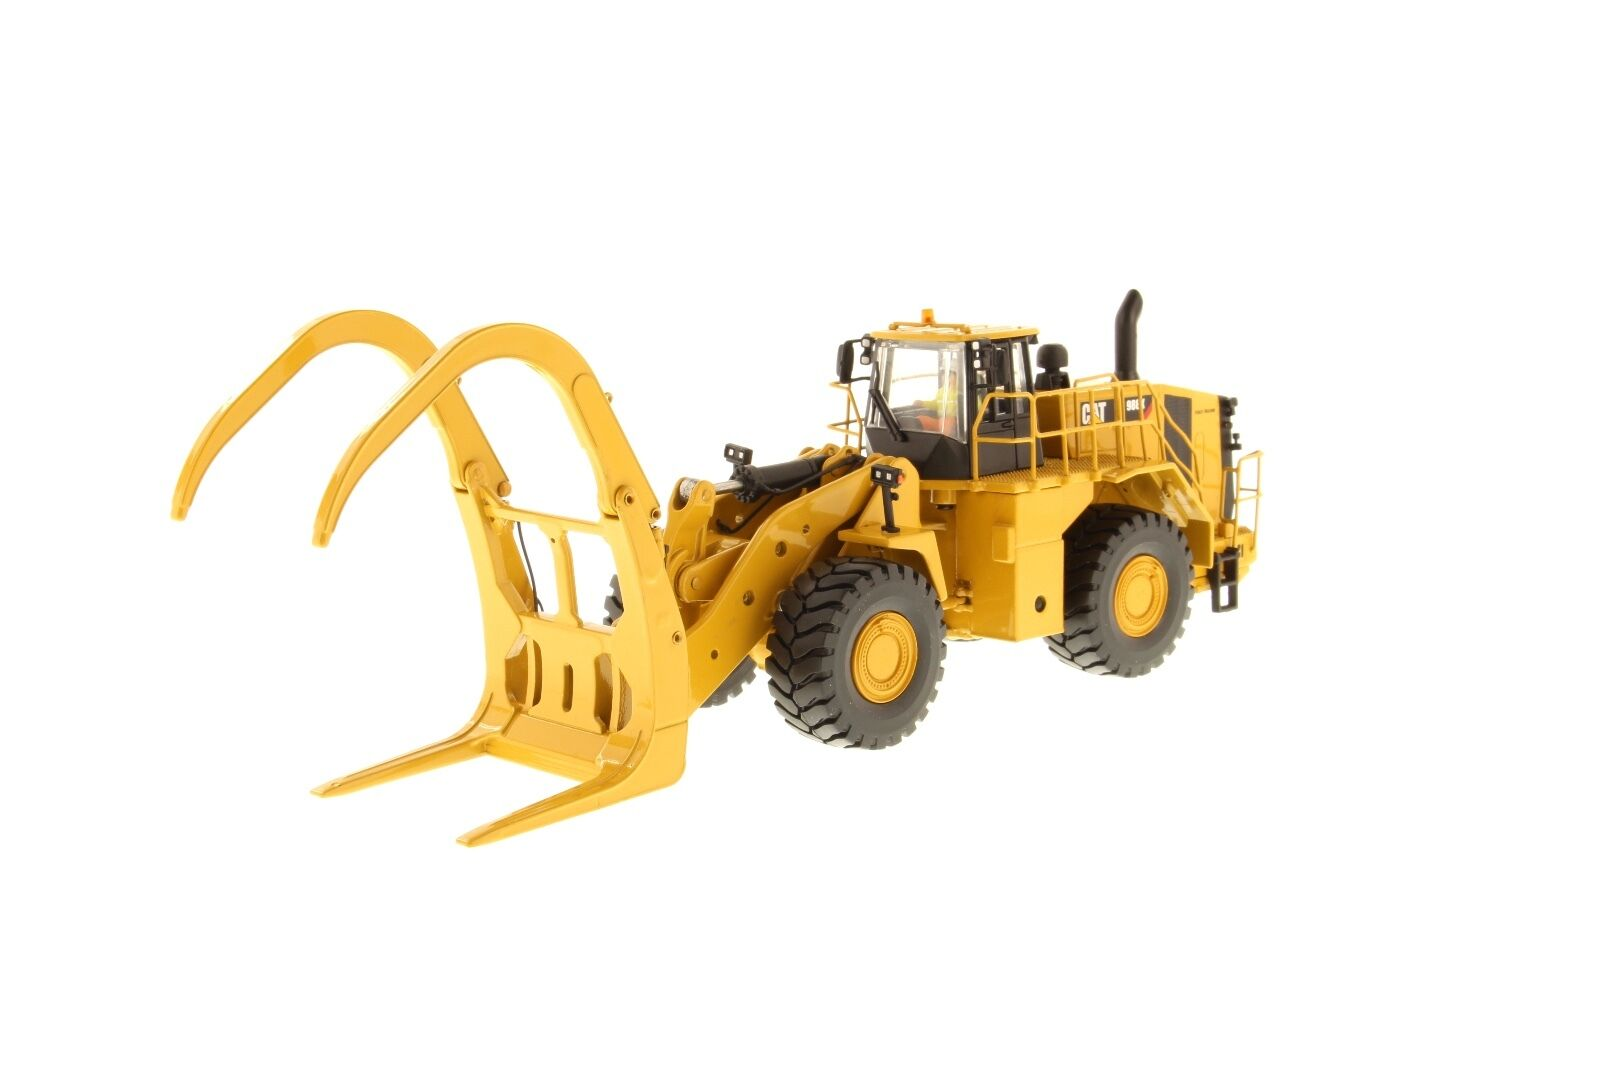 Caterpillar ® 1 50 Escala Cat 988K Rueda Cochegador Con Grapa - 85917 dm